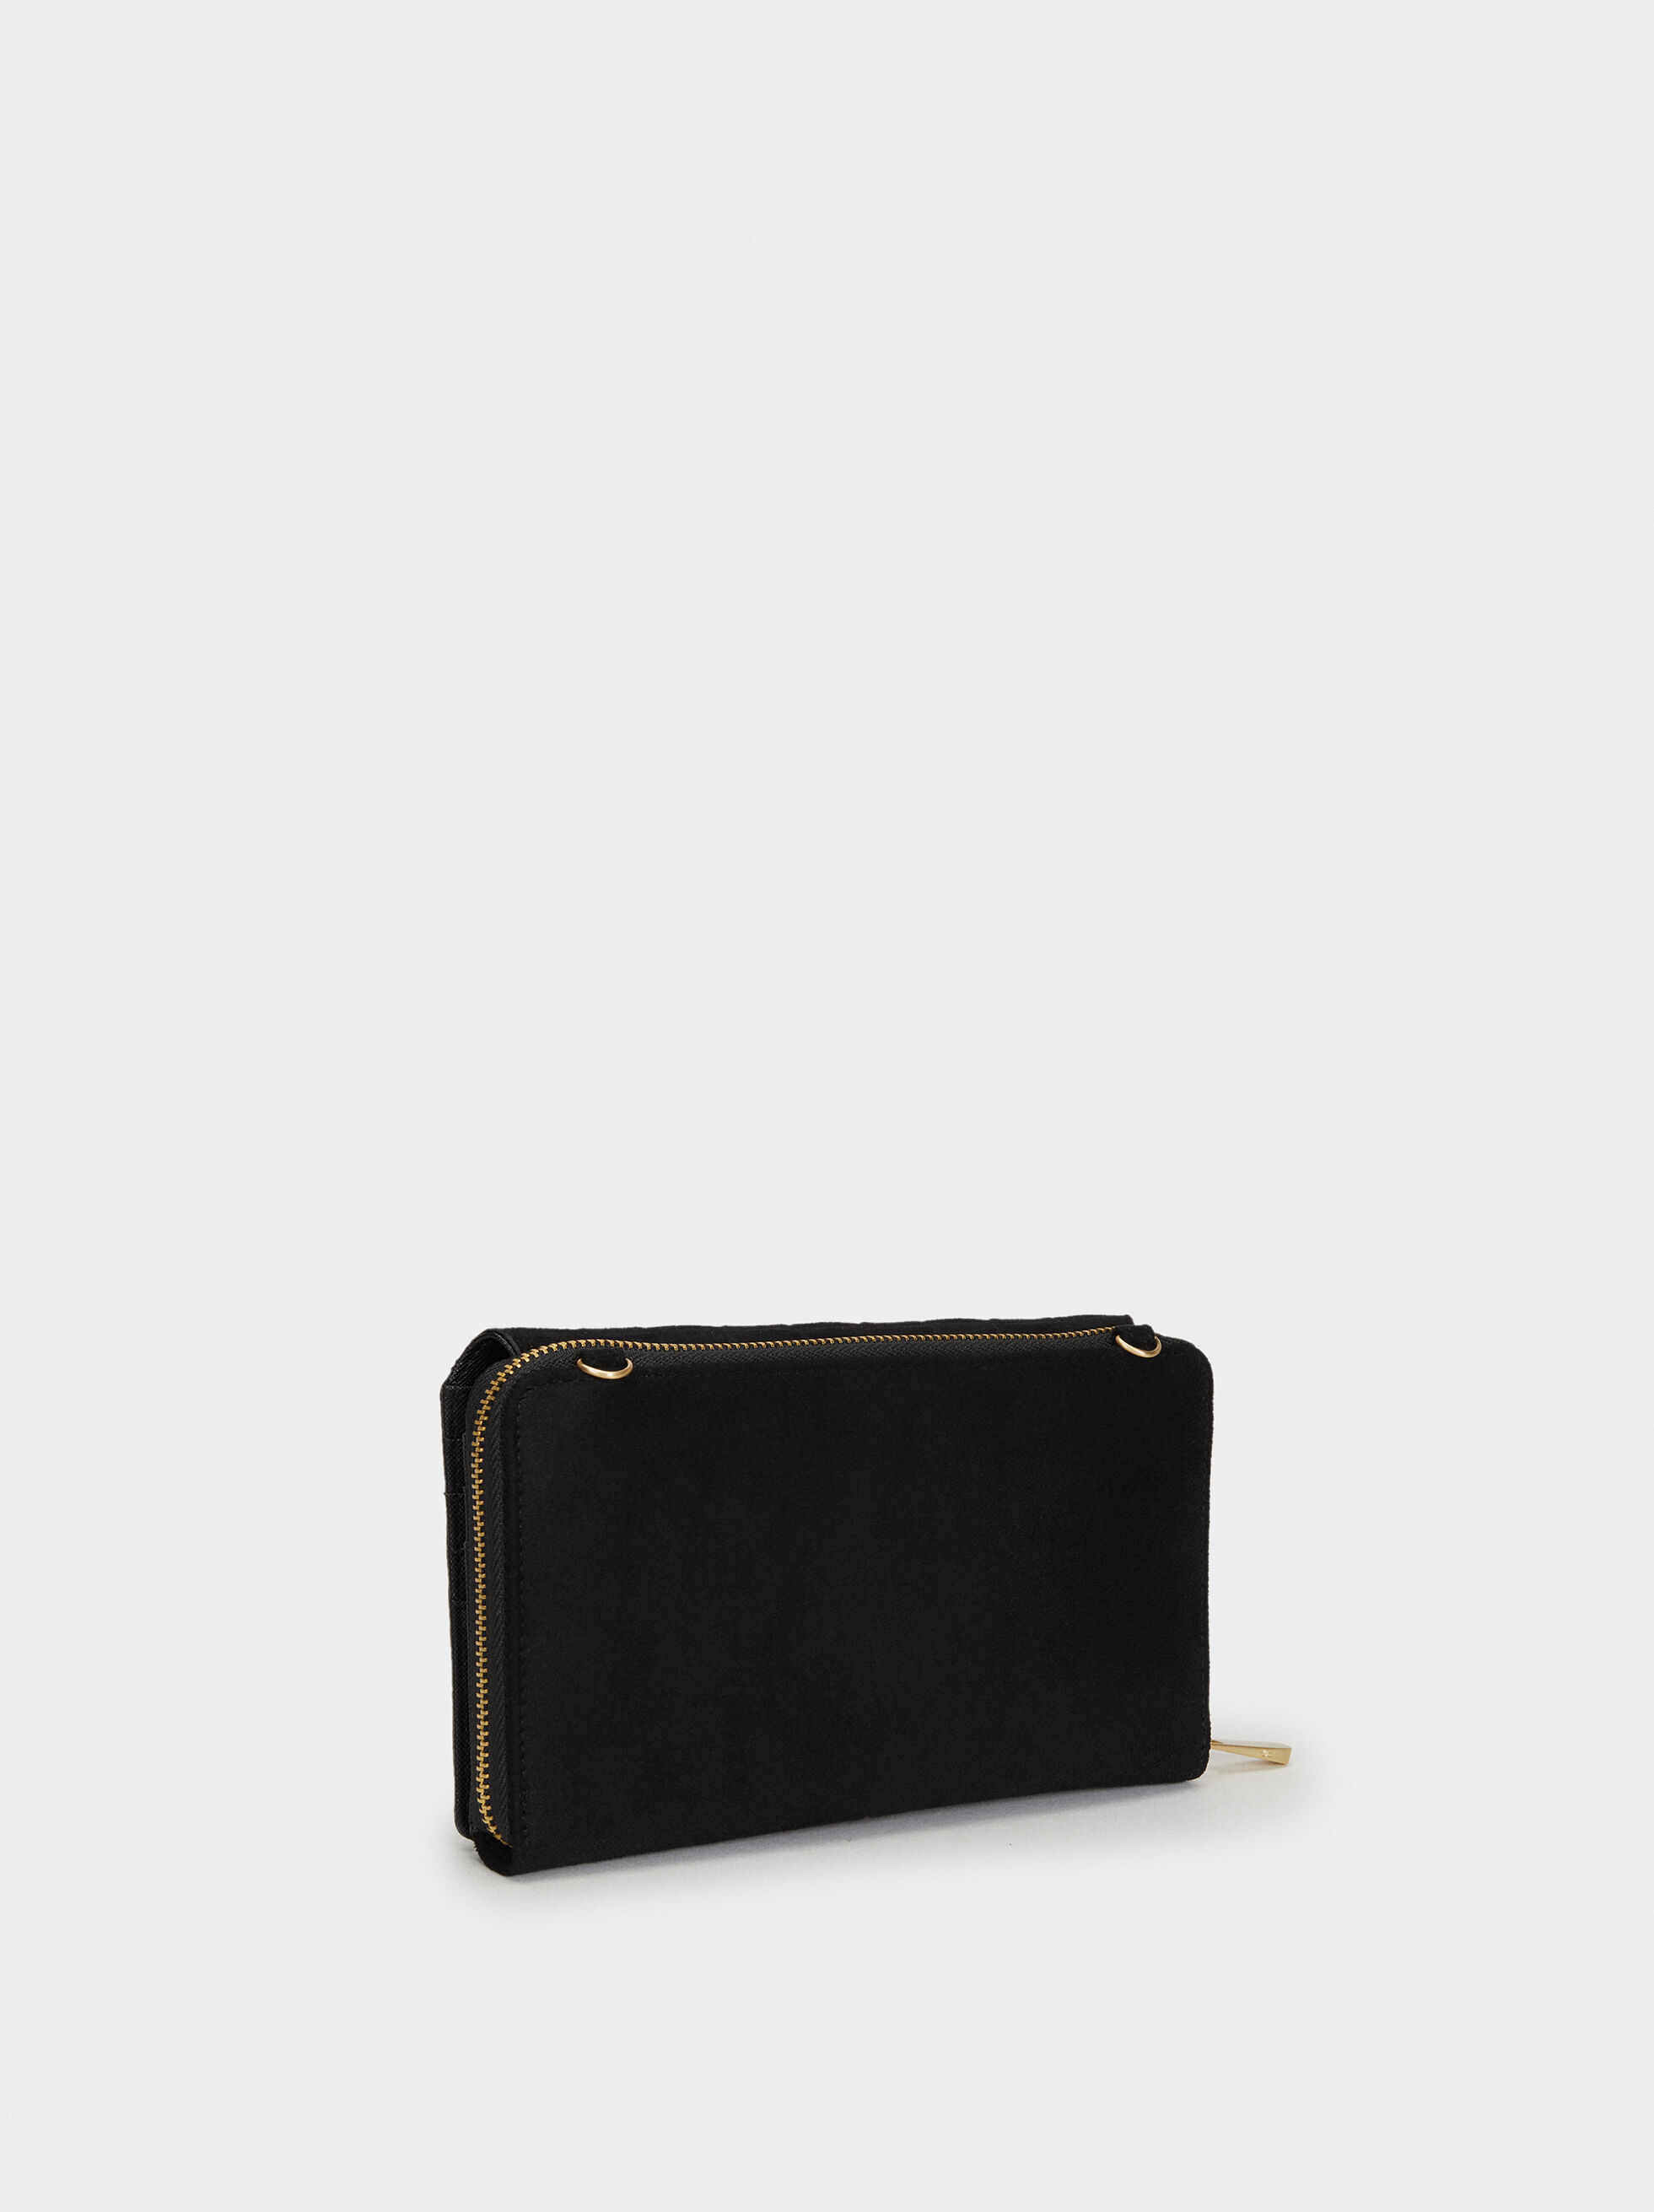 Large Suede Texture Purse, Black, hi-res